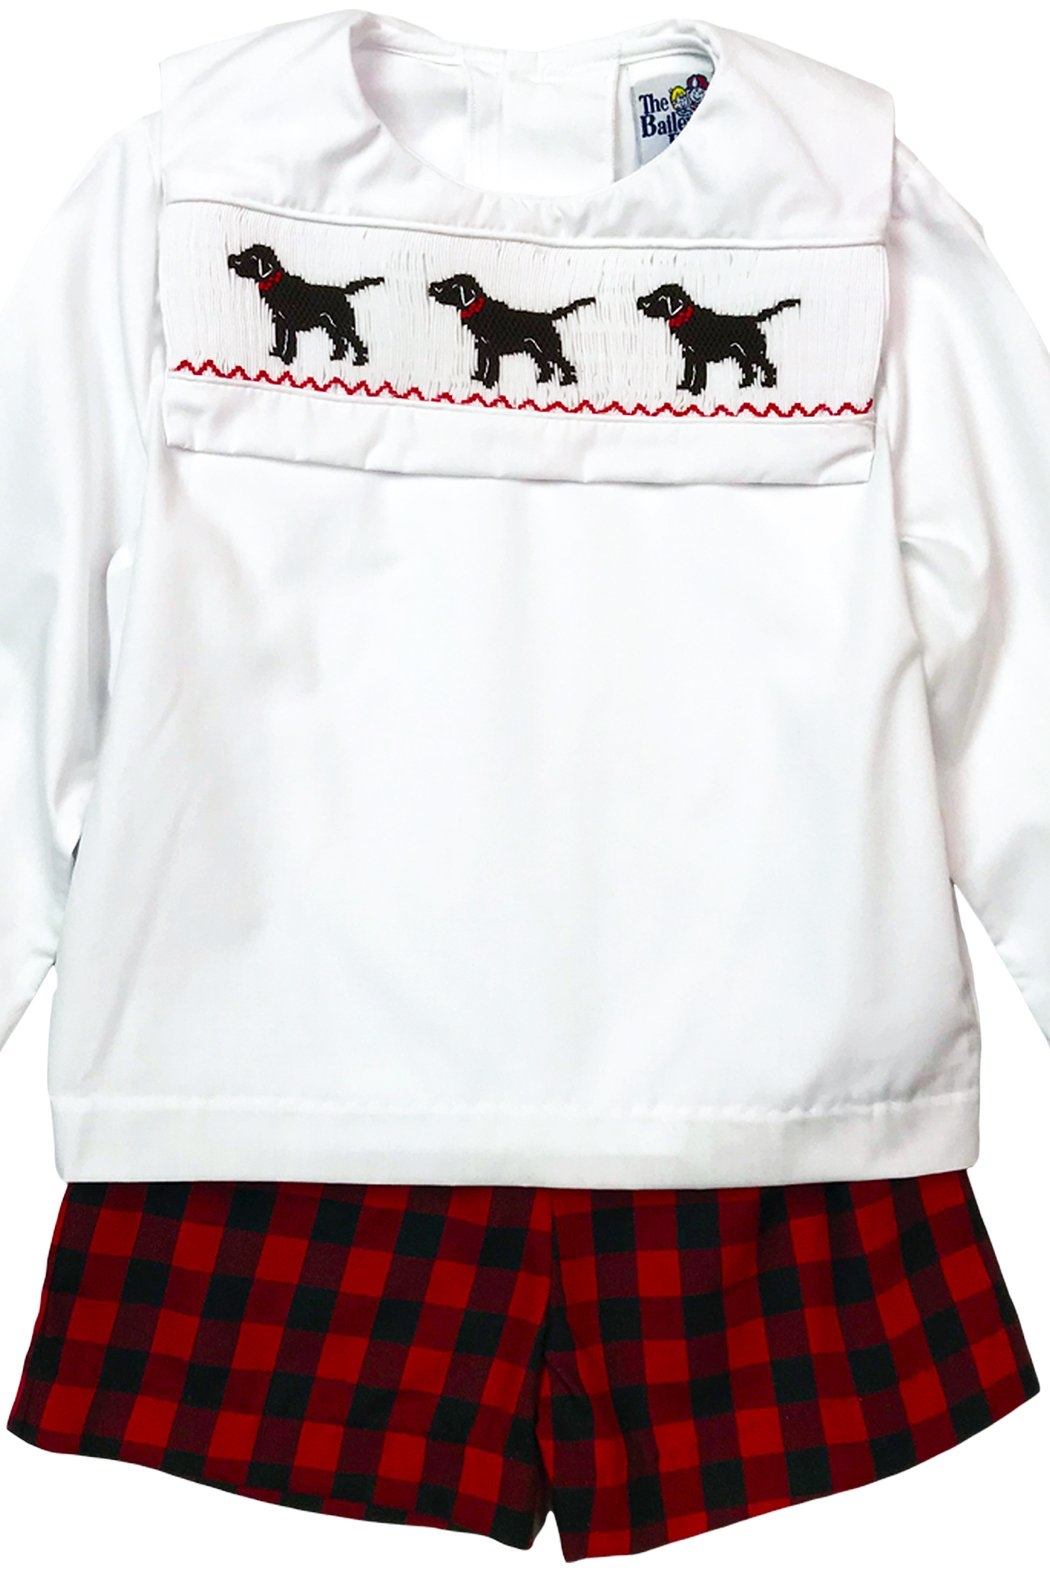 Bailey Boys Smocked Puppy Dog Dressy Short Set - Front Cropped Image